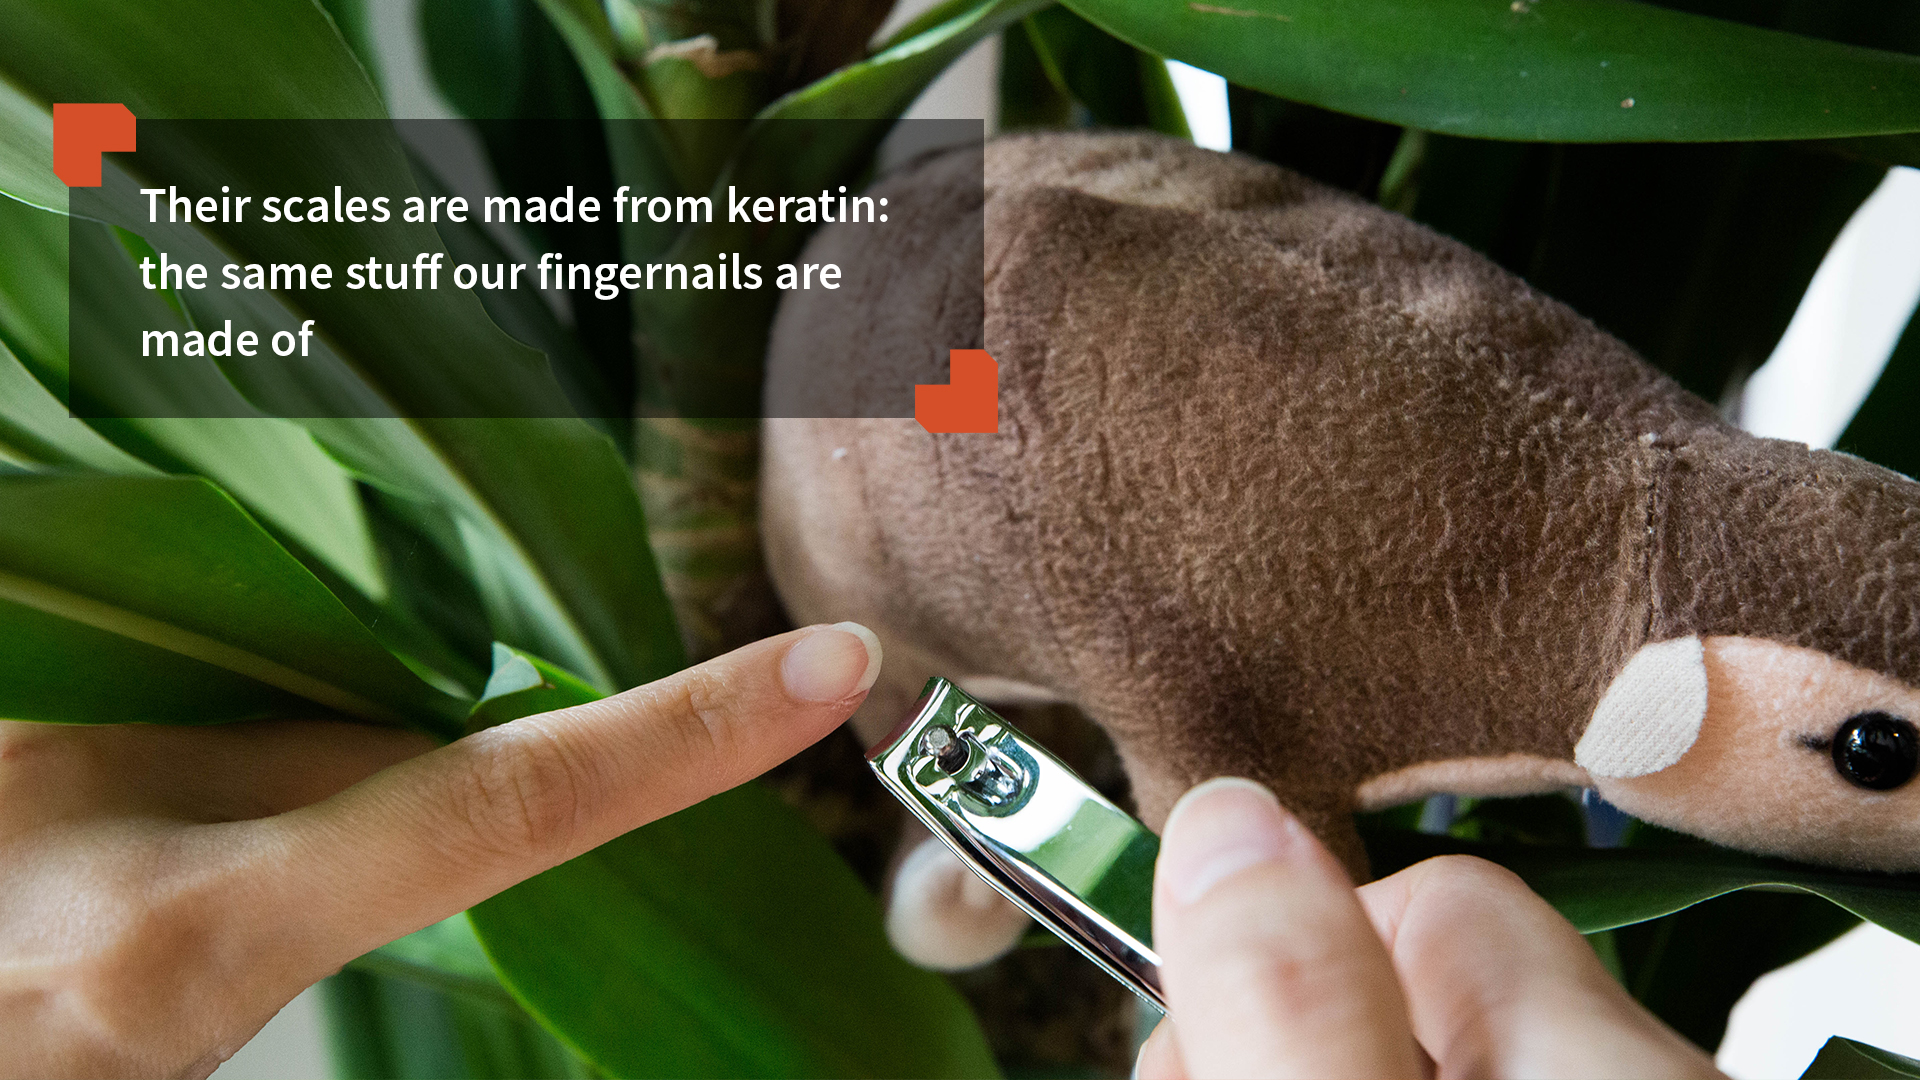 Their scales are made from keratin: the same stuff our fingernails are made of